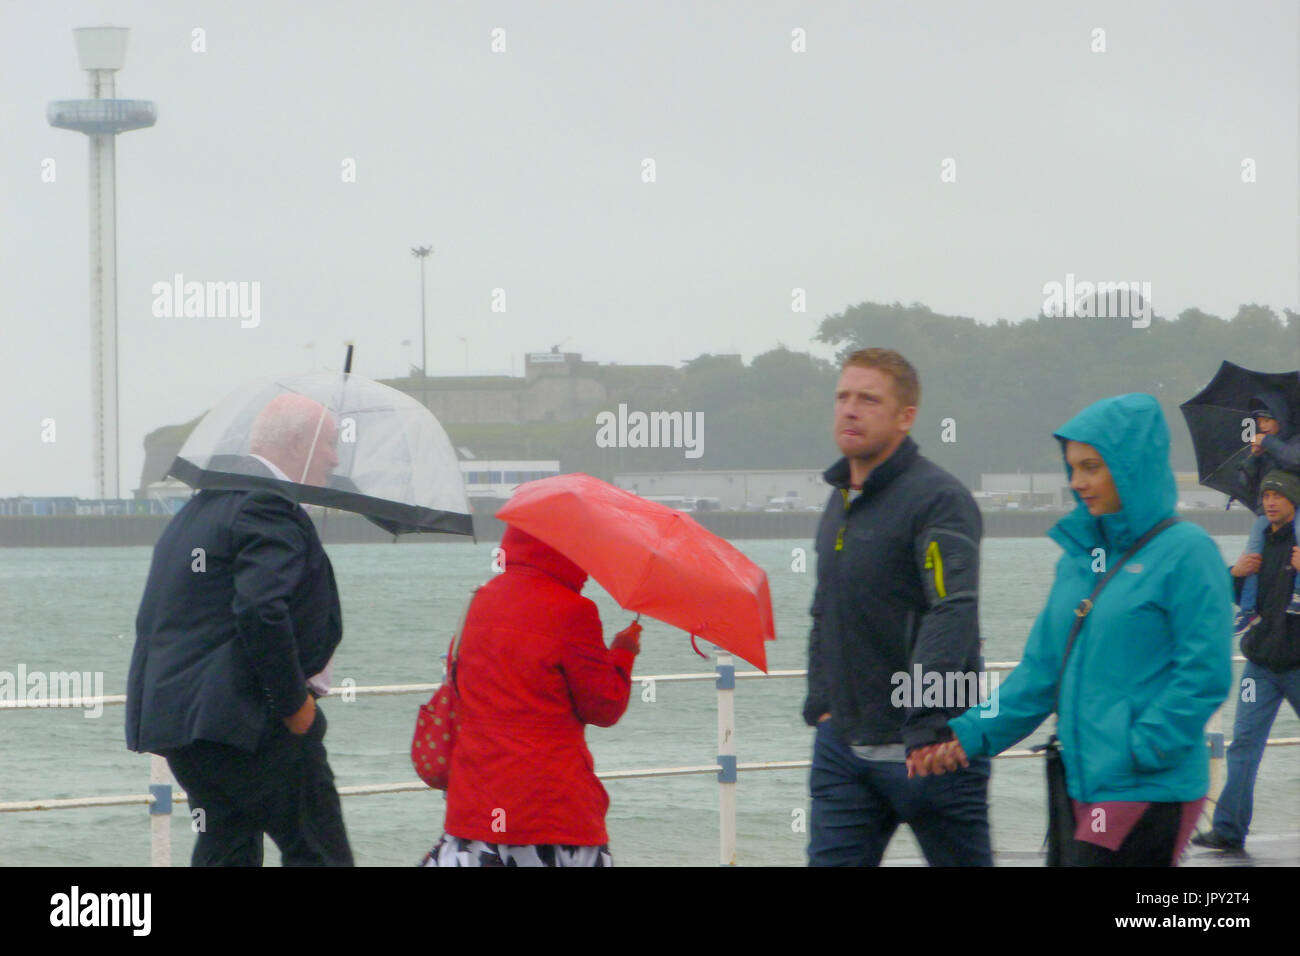 Weymouth, UK. 2nd Aug, 2017. One man's sad face says it all on a day of non-stop rain in Weymouth Credit: stuart fretwell/Alamy Live News - Stock Image